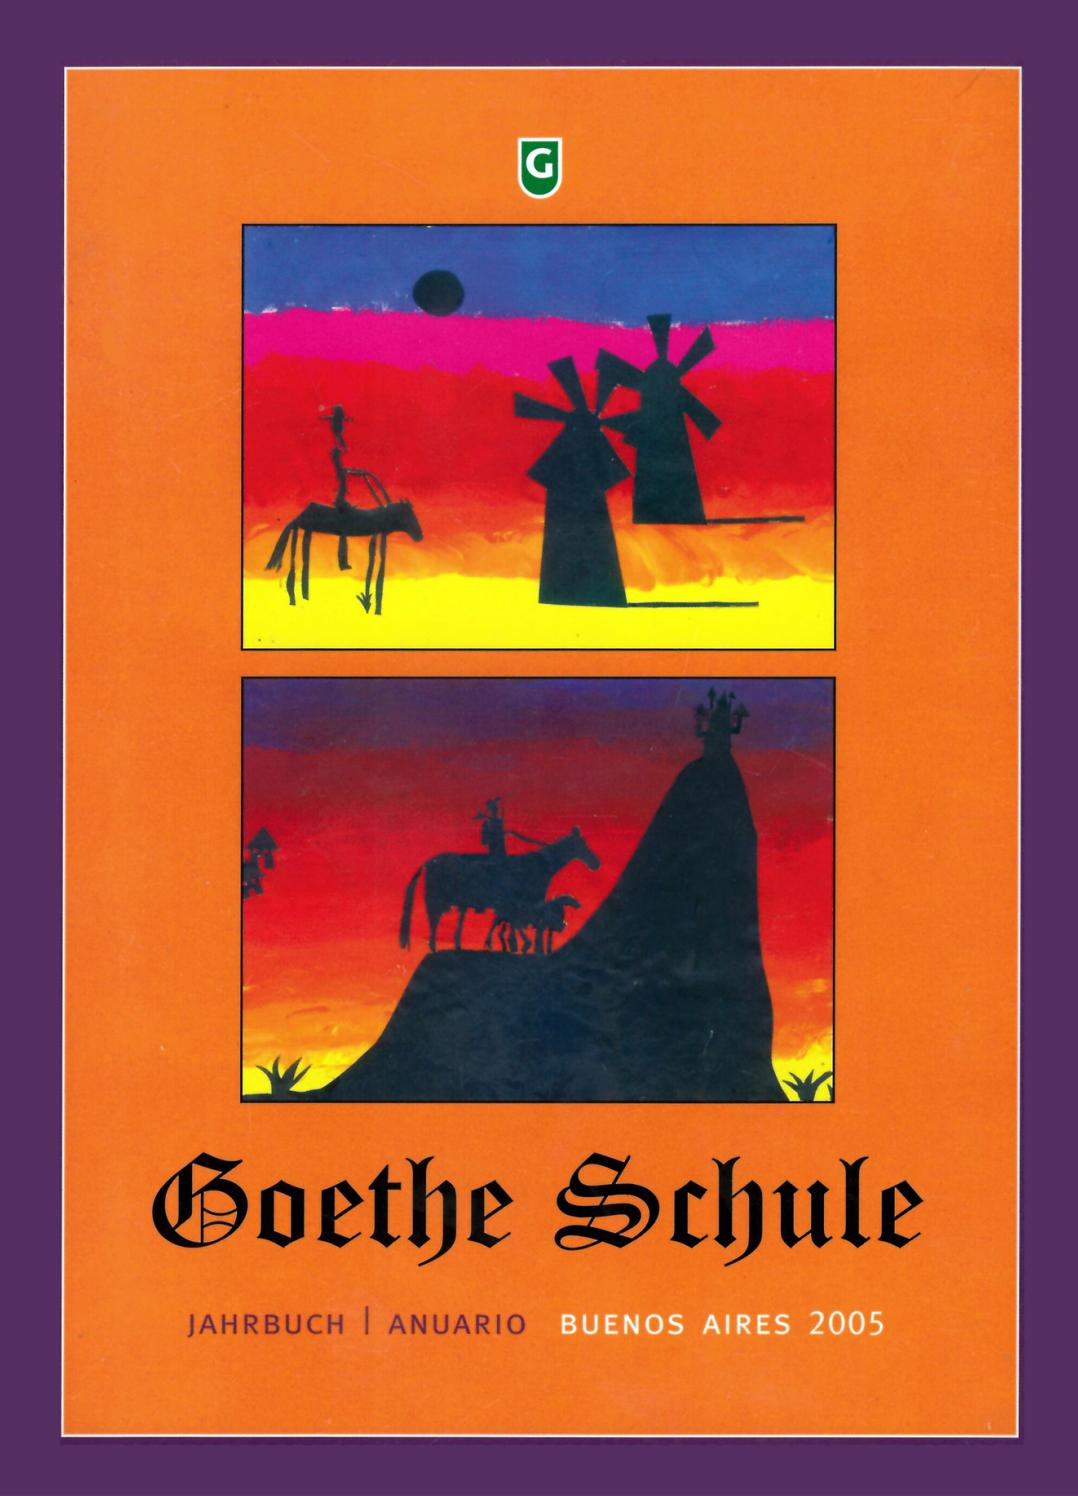 Anuario 2005 By Goethemail6 Issuu